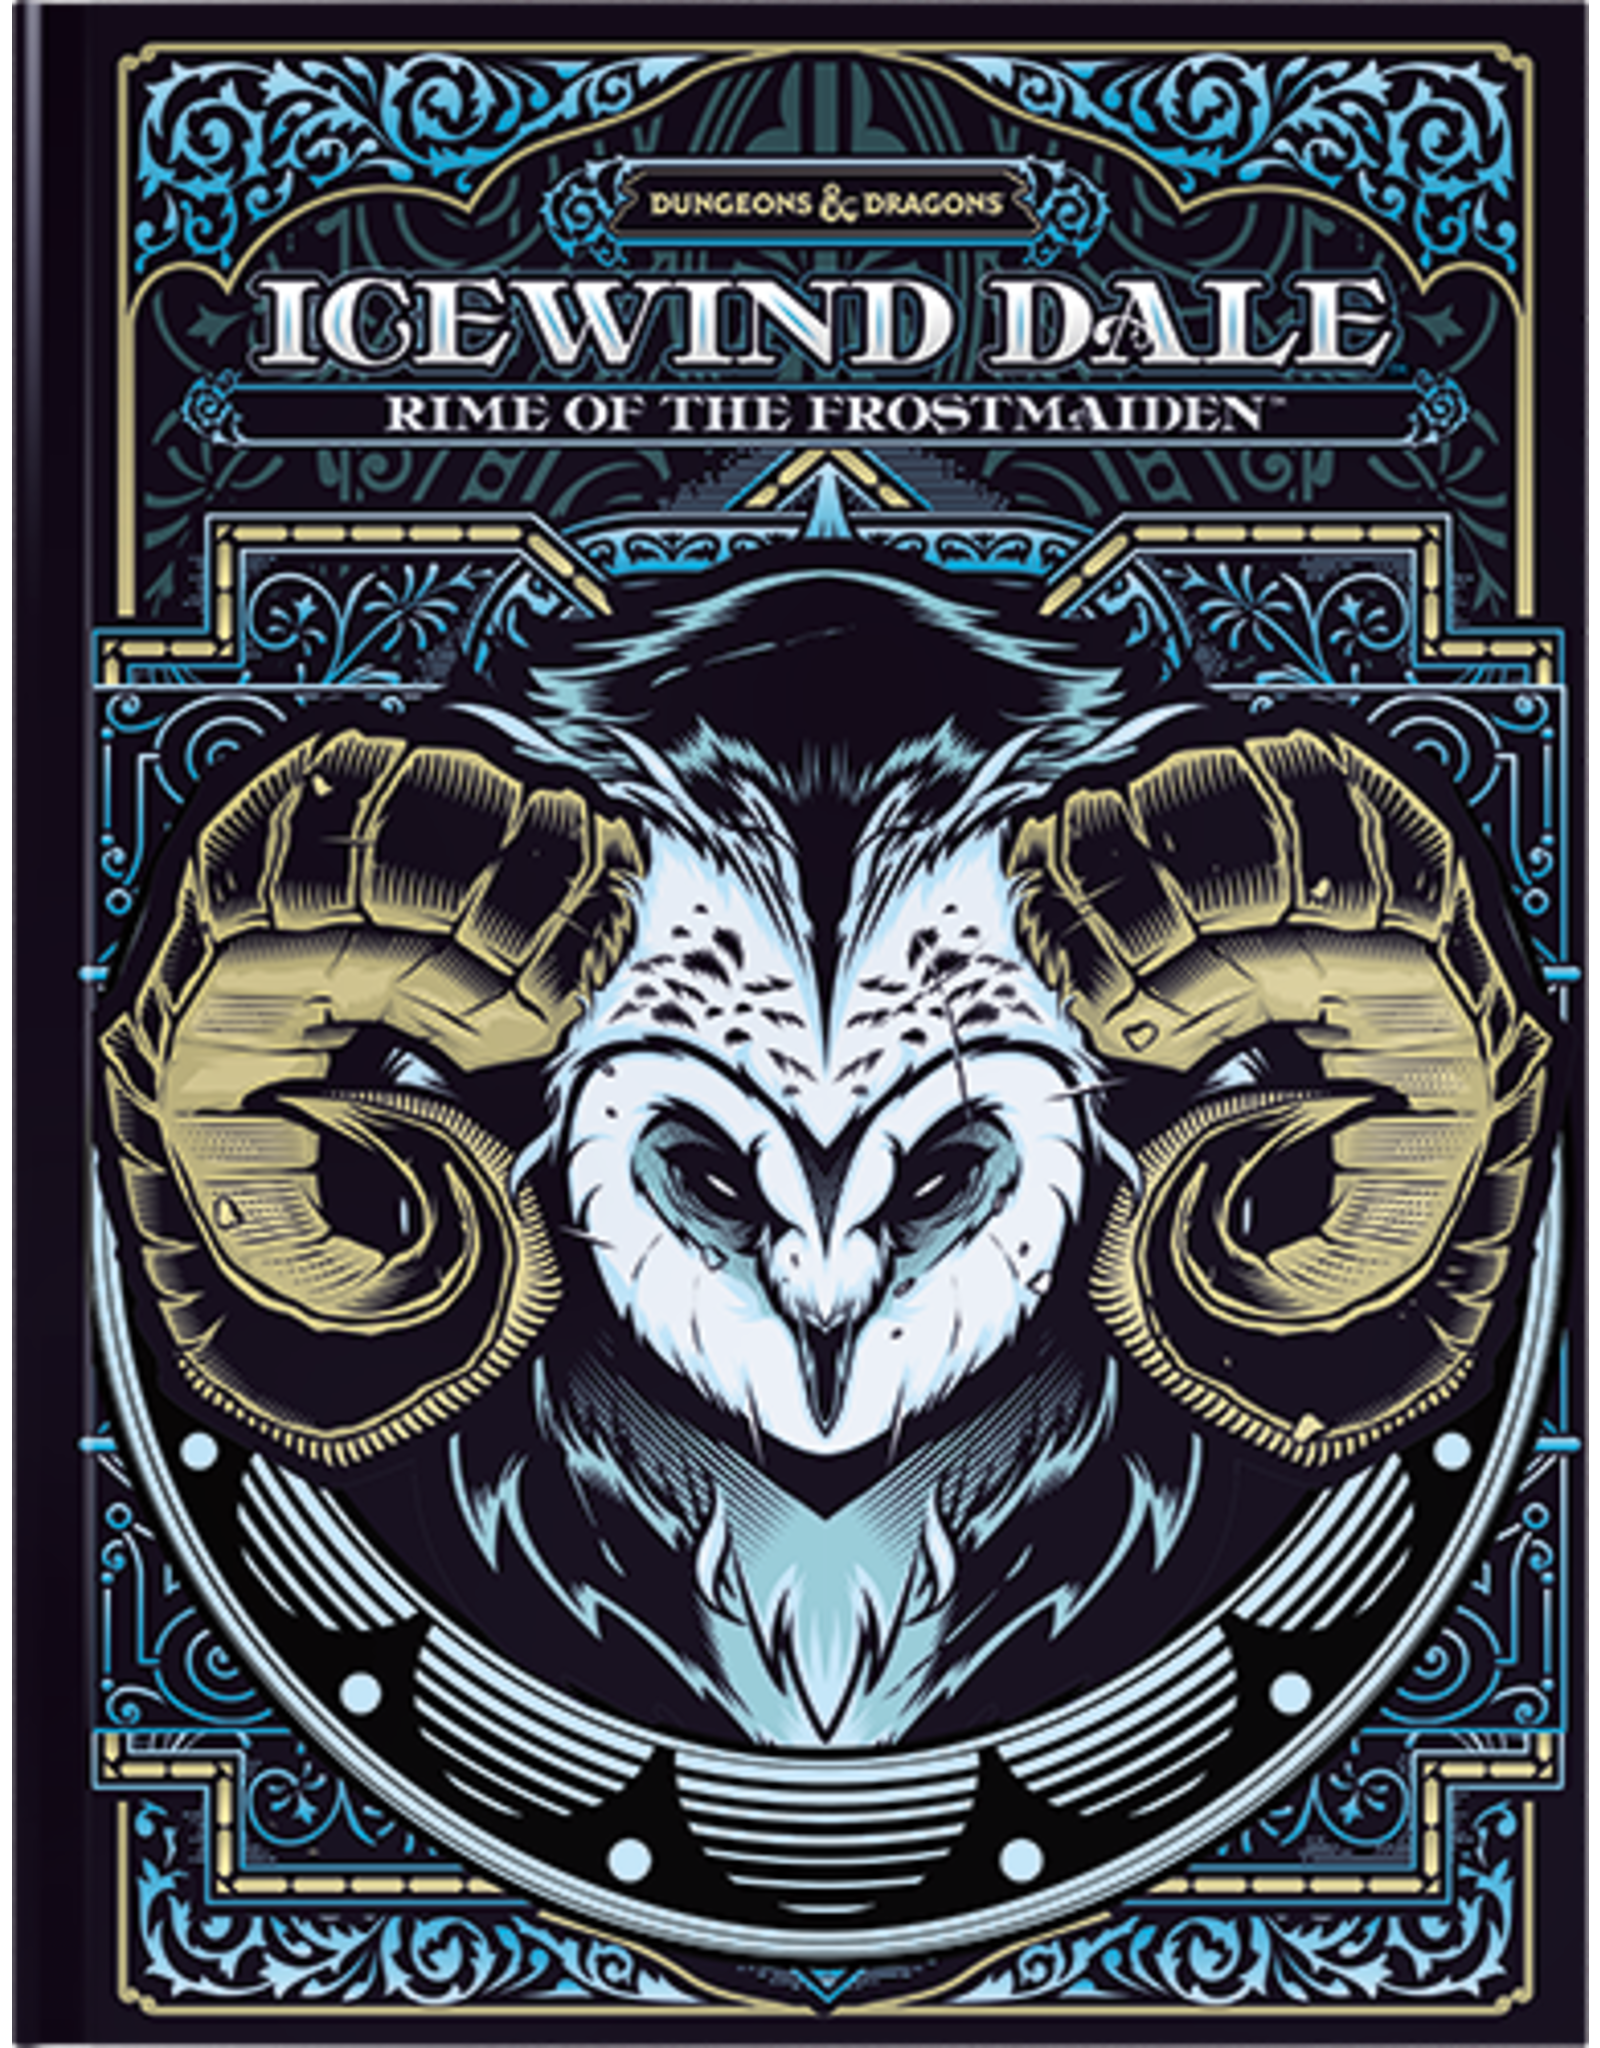 Wizards of the Coast Dungeons and Dragons RPG: Icewind Dale- Rime of the Frostmaiden LE